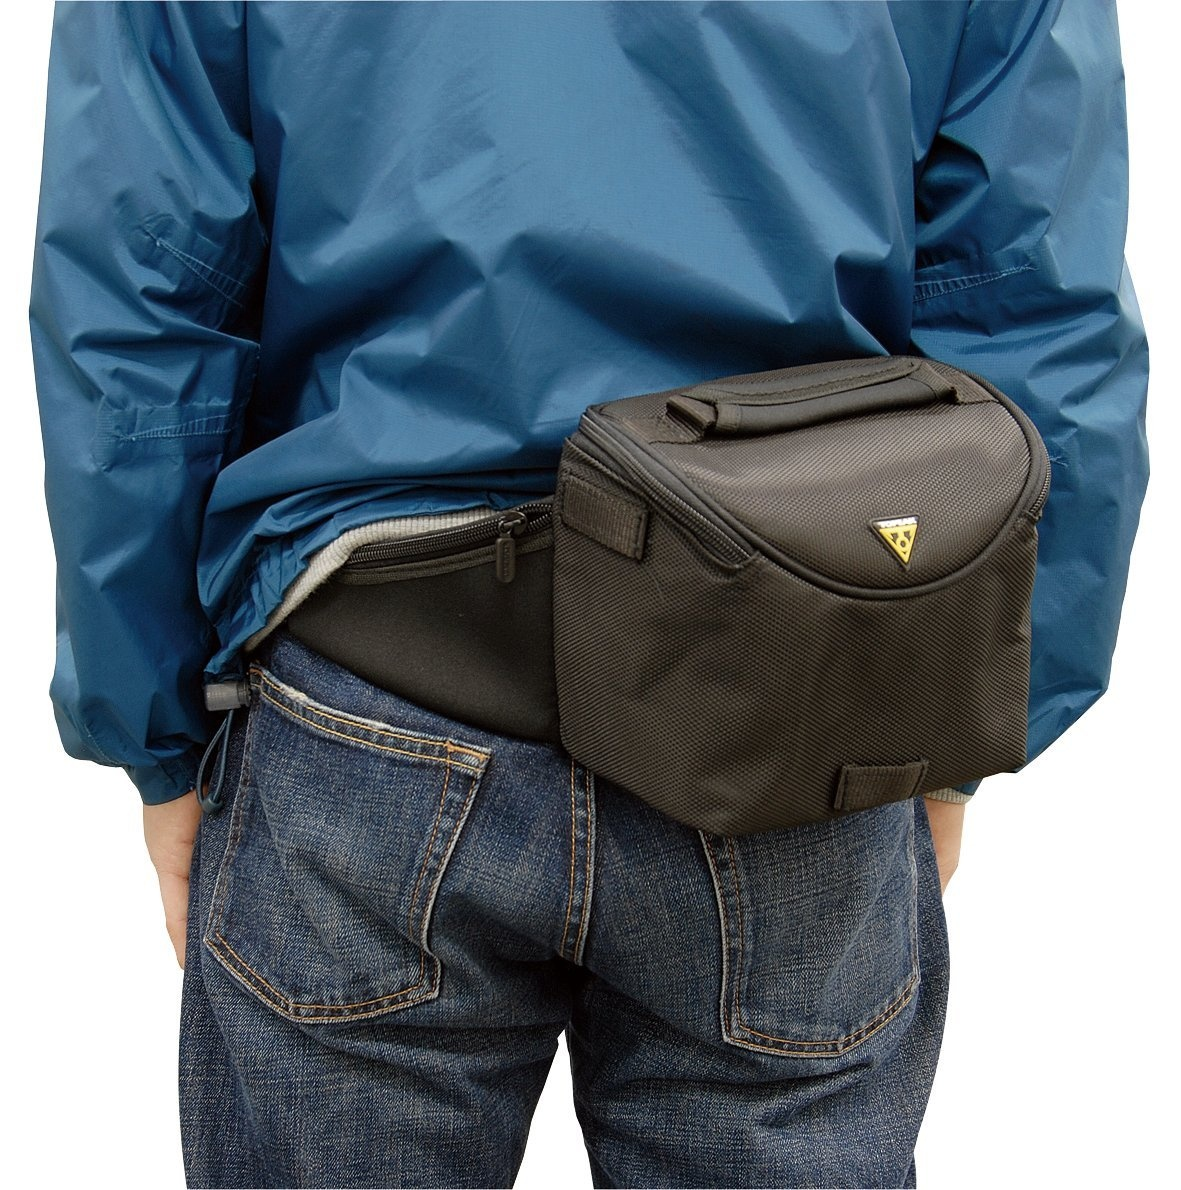 Topeak Handlebar Bag Sports Outdoors Buy Online From Tourguide Dx